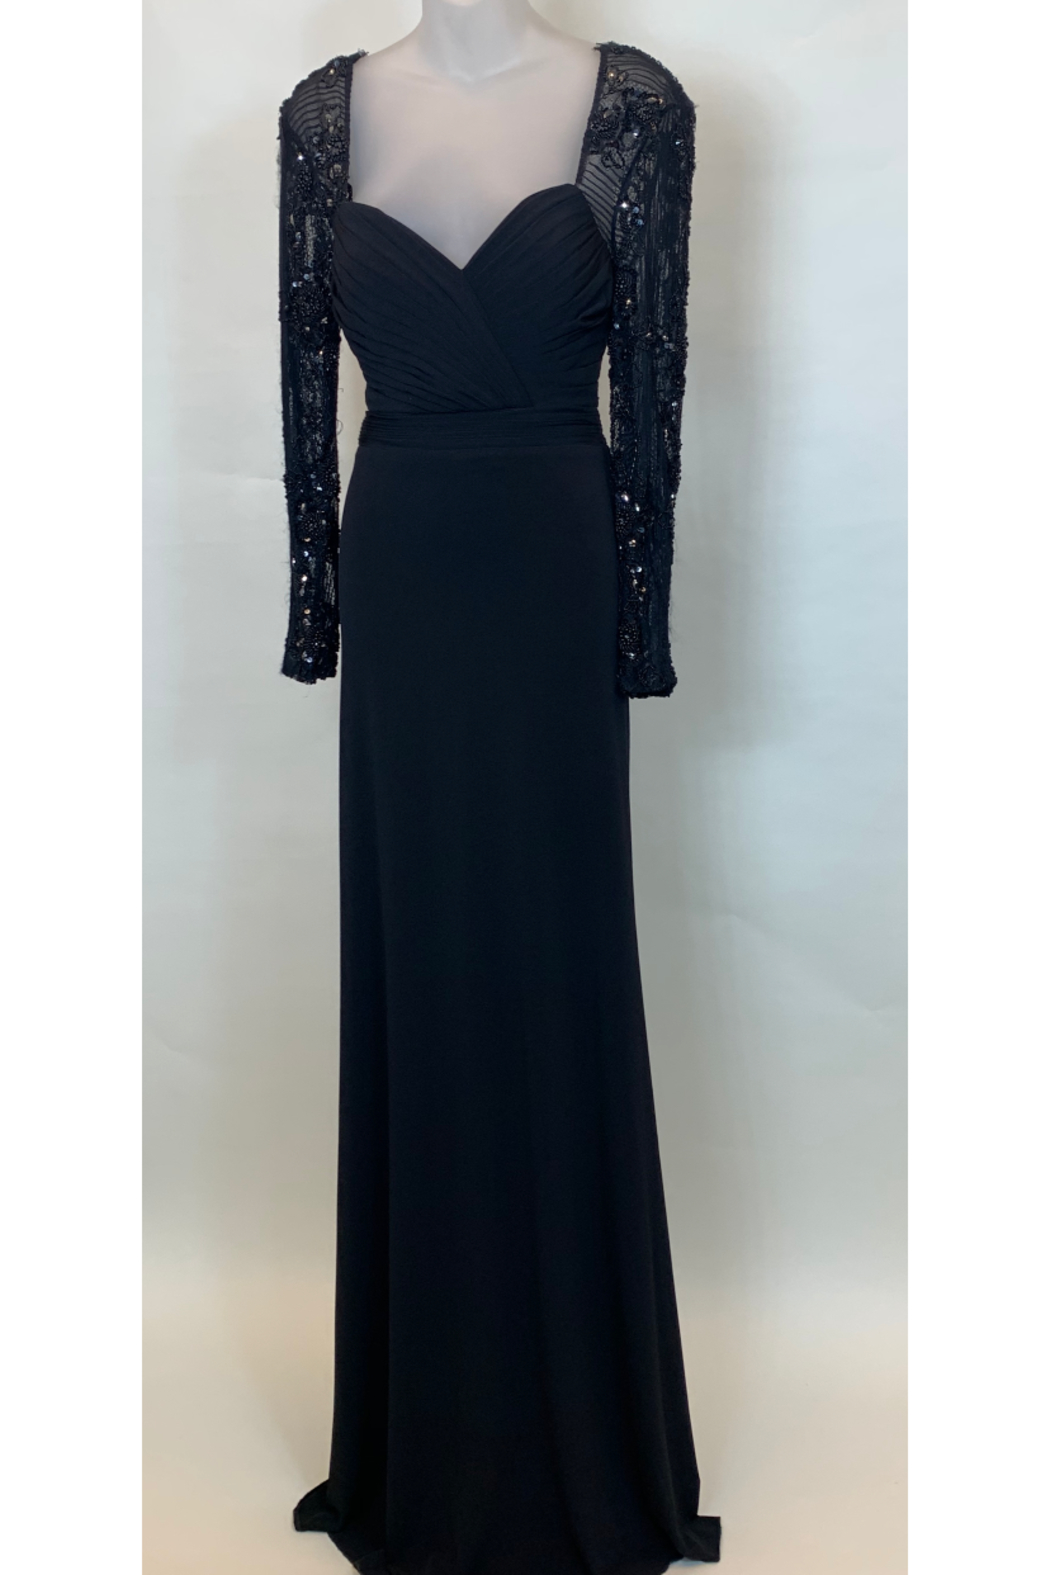 Terani Couture DOUBLE JERSEY LONG SLEEVE GOWN - Main Image